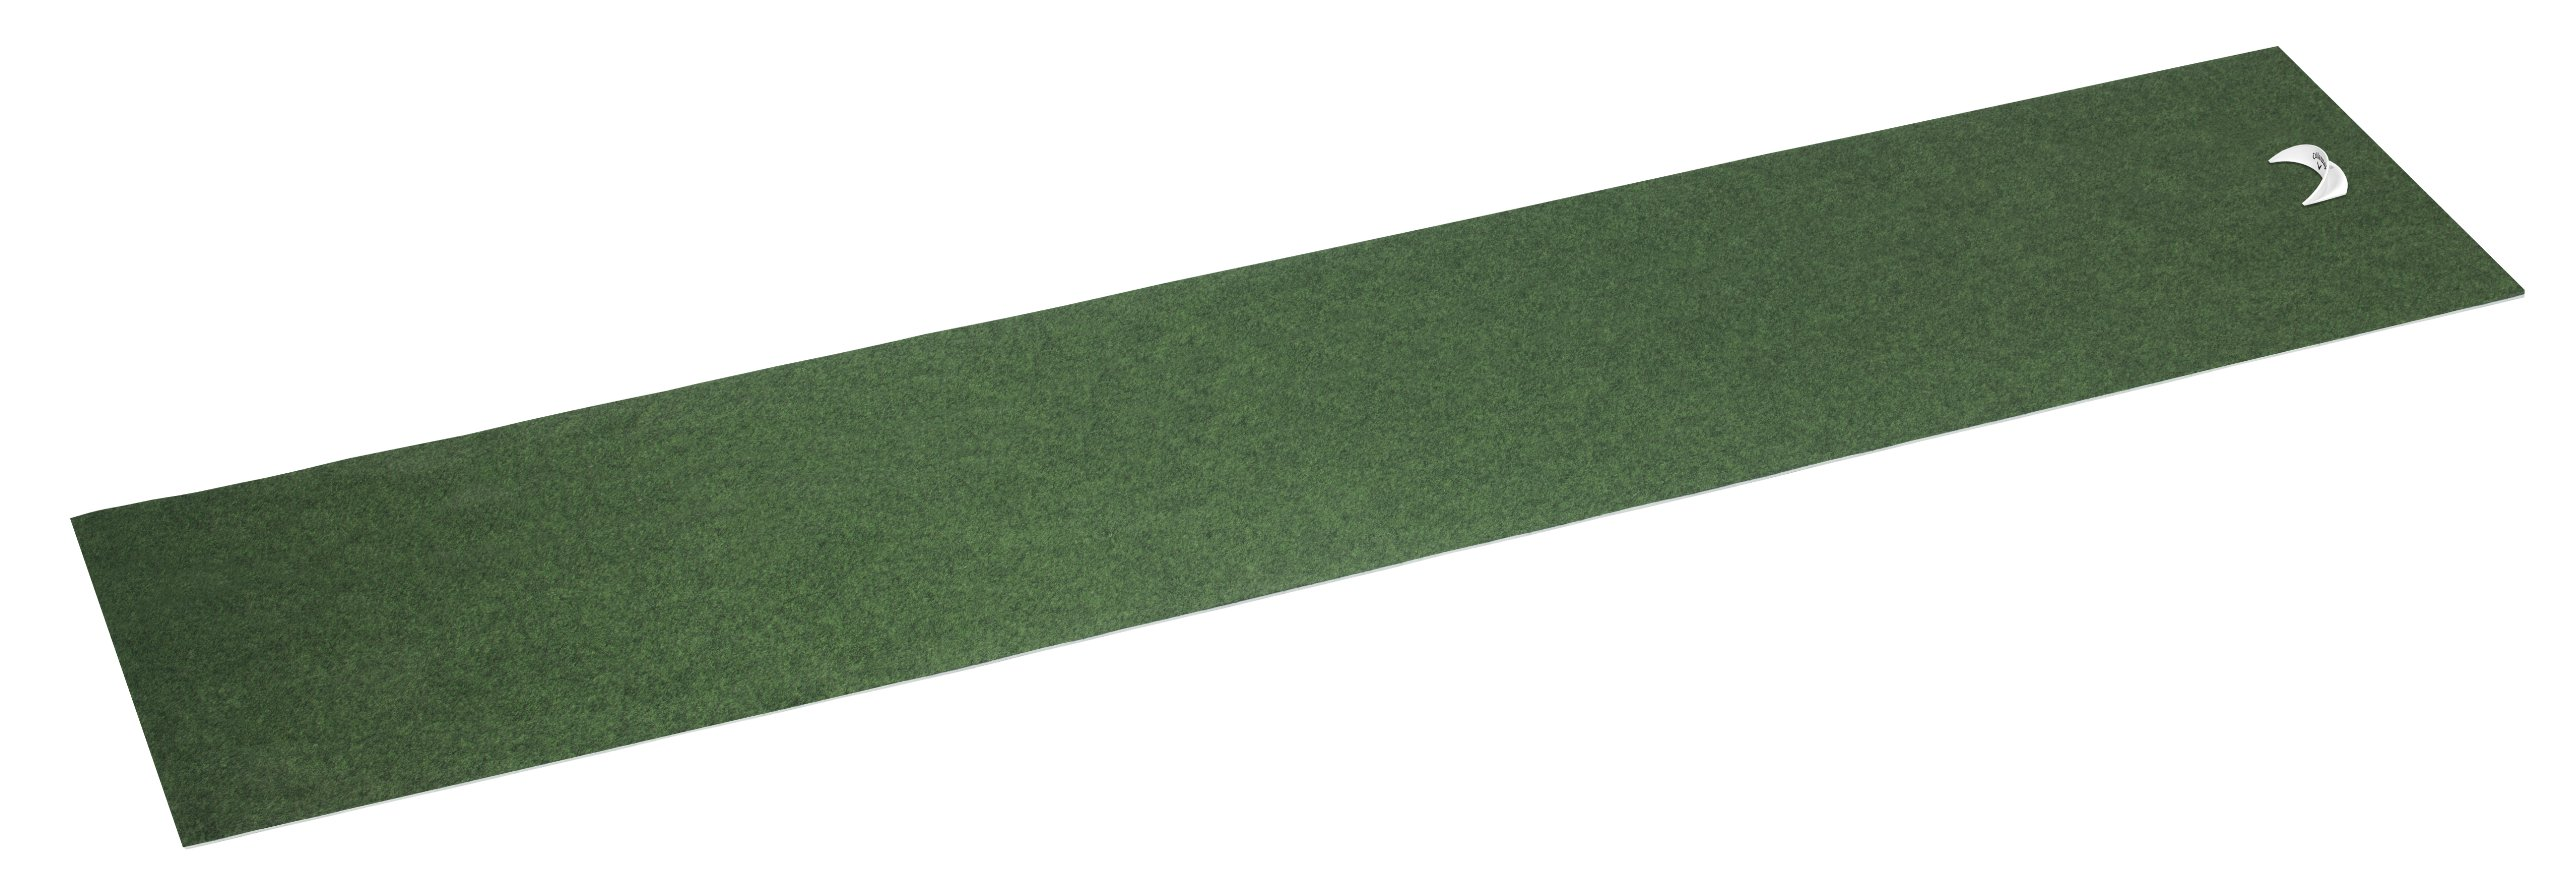 Callaway Golf Executive Putting Mat, 2 x 8-Feet